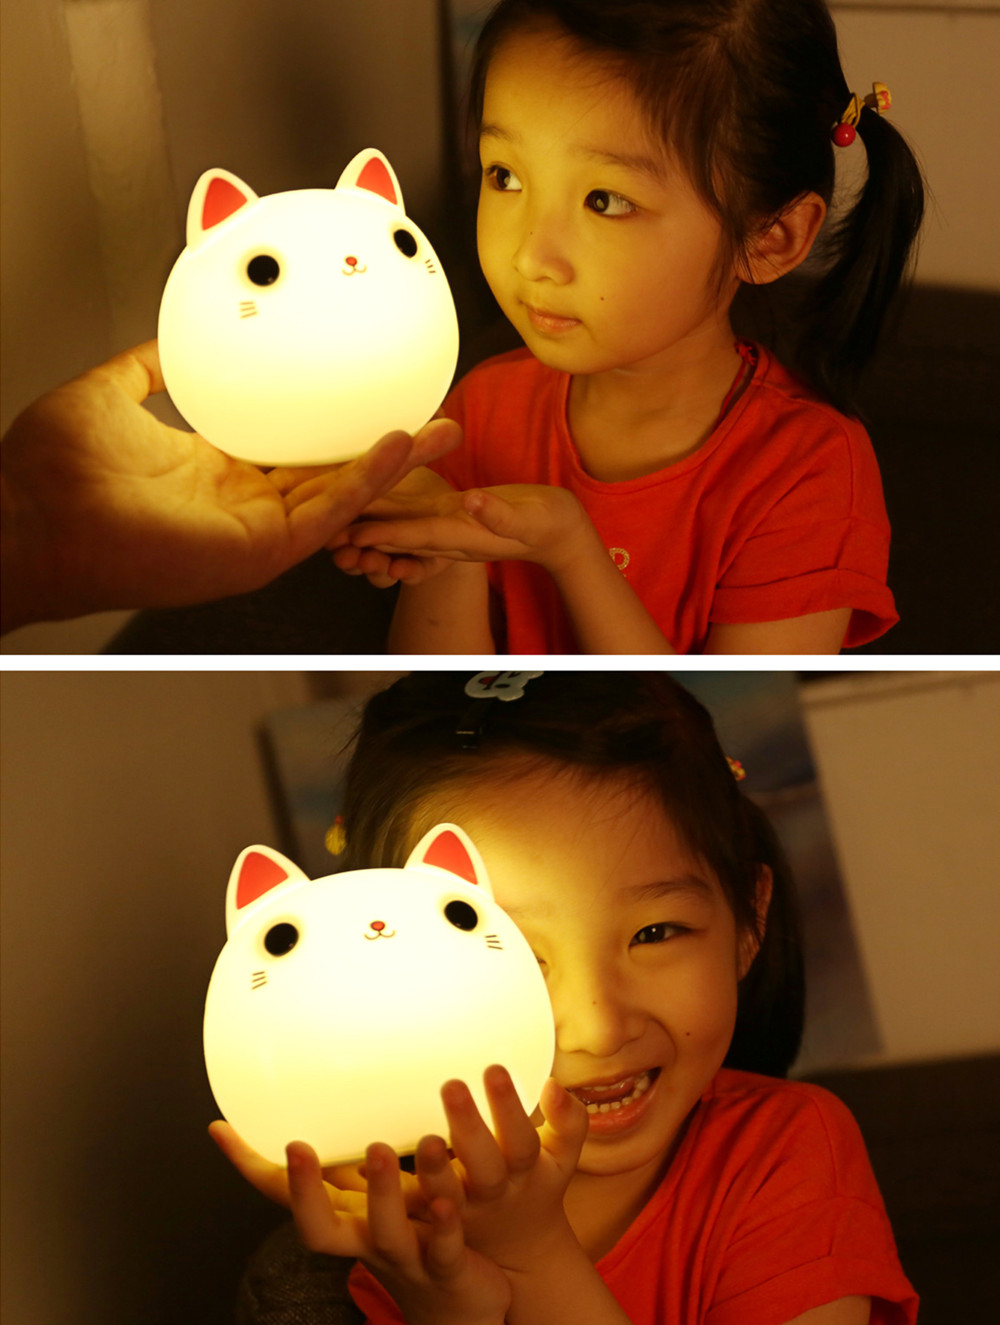 SuperNight Cute Cartoon Cat LED Night Light Silicone Rechargeable Touch Tap Kids Baby Bedroom Bedside Warm Colorful Table Lamp (10)